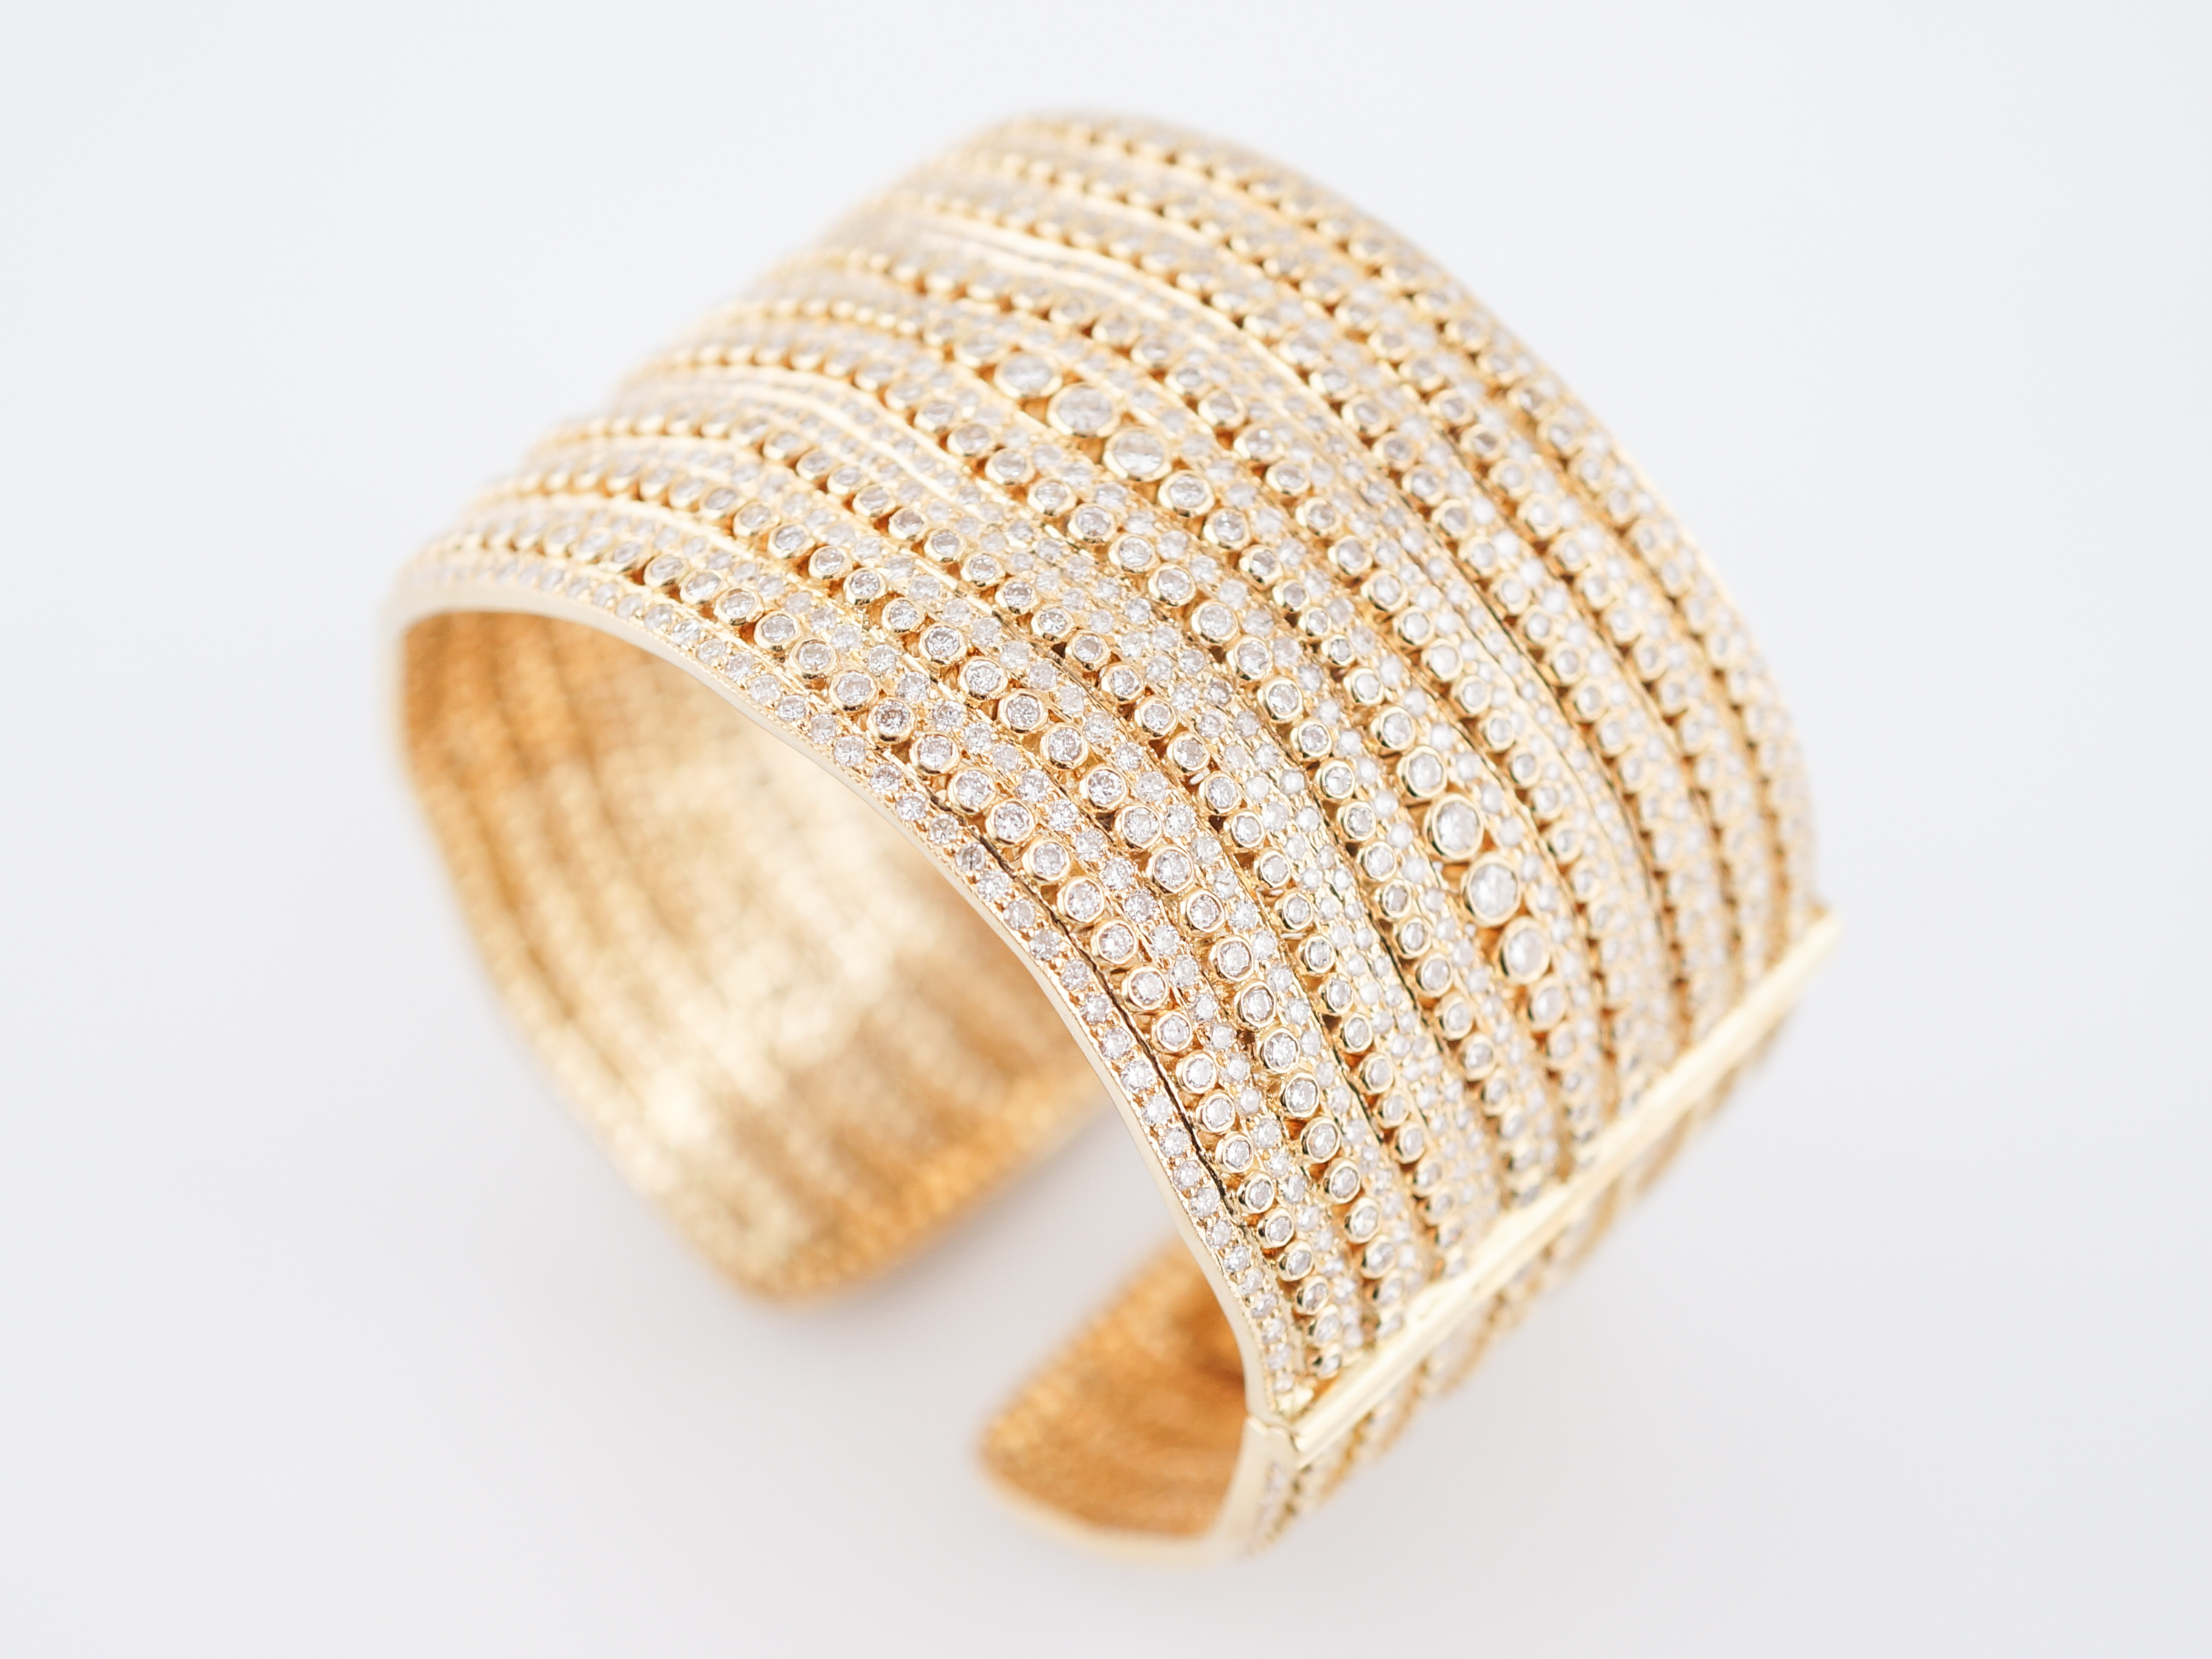 s bracelet tapered products john johnsbrana brana brushed bangle aluminum bangles inch gold anticlastic